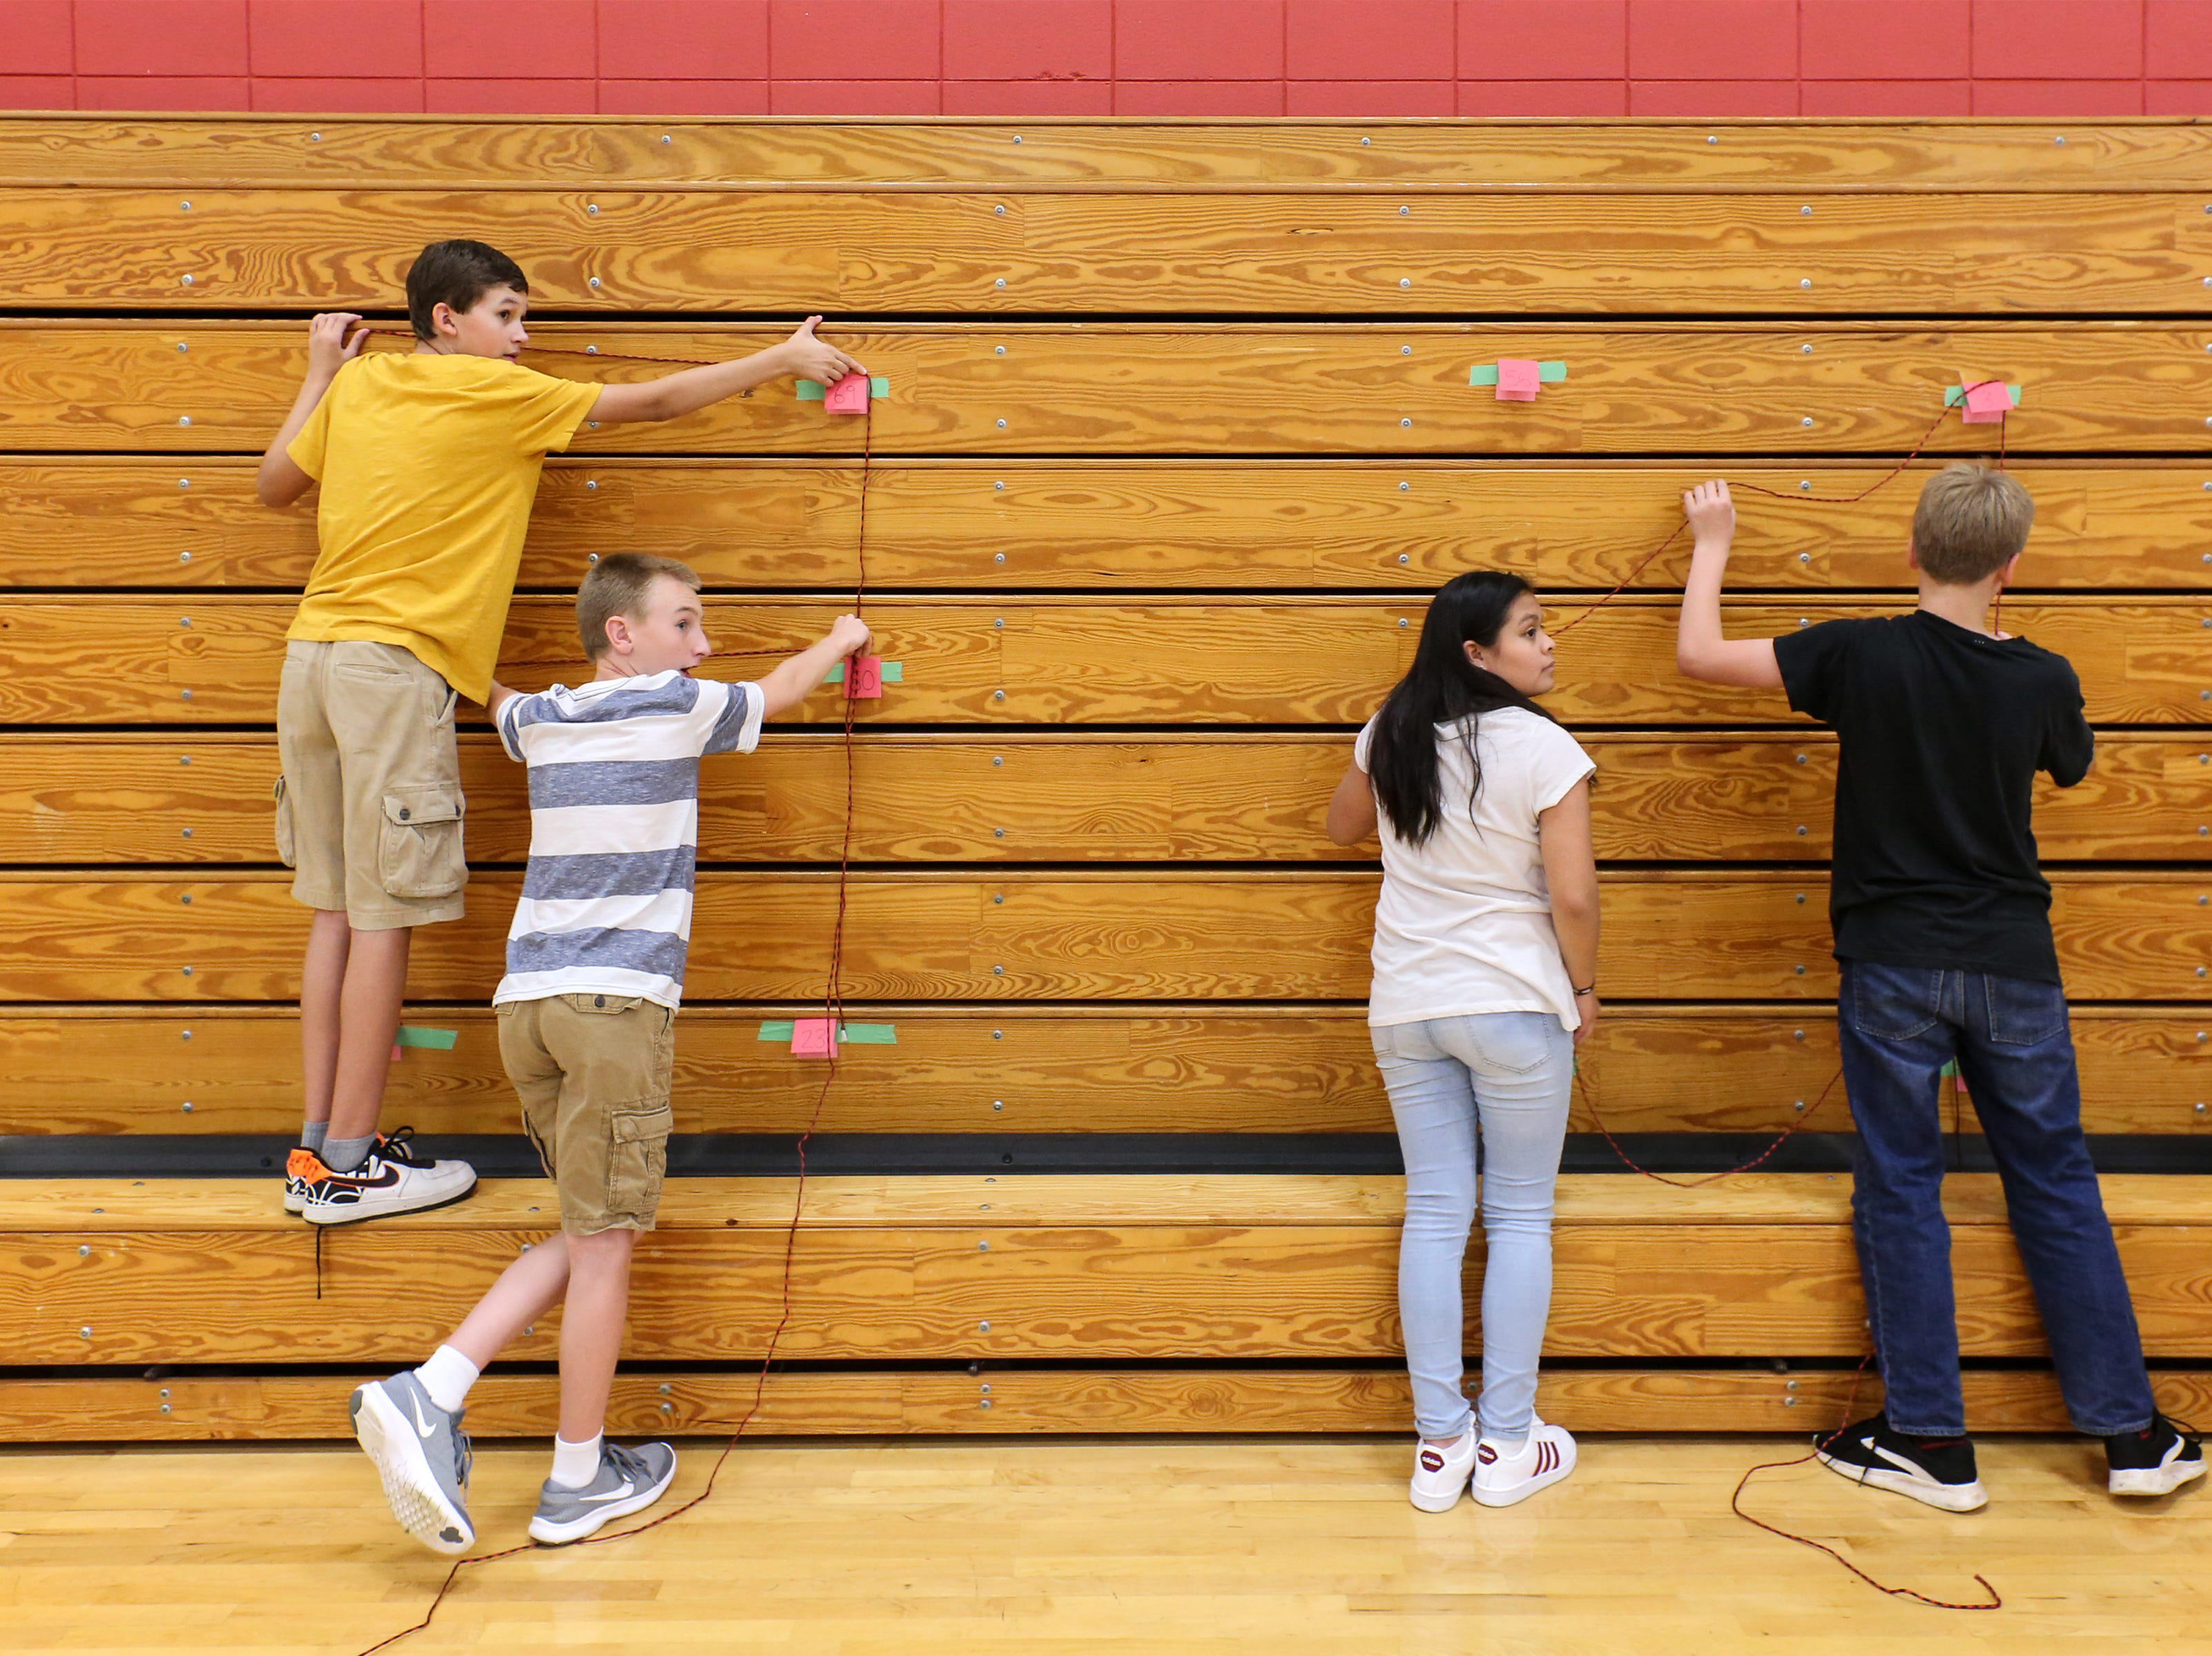 Jeff Cavanaugh's 8th grade homeroom search for the next clue during an escape room activity on the first day of school at Wilson Junior High Tuesday, September 4, 2018, in Manitowoc, Wis. Josh Clark/USA TODAY NETWORK-Wisconsin